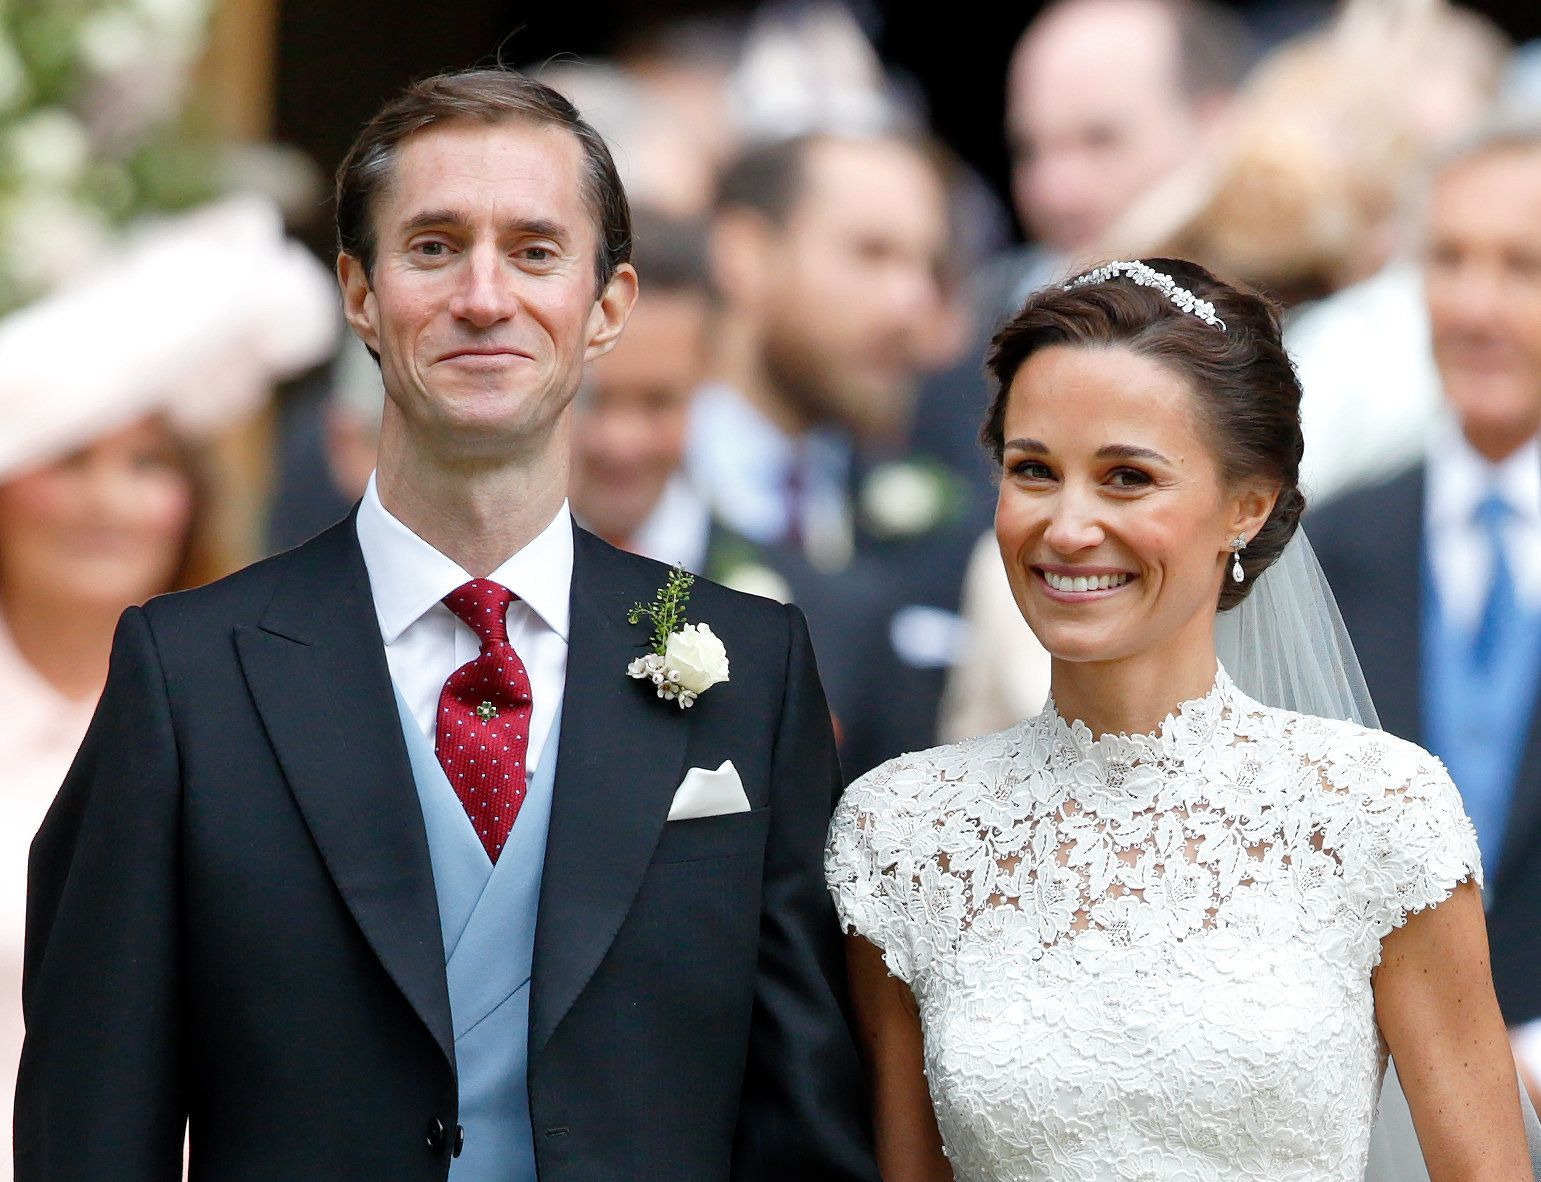 James Matthews and Pippa Middleton leave St. Mark's Church after their wedding on May 20, in Englefield Green, England.